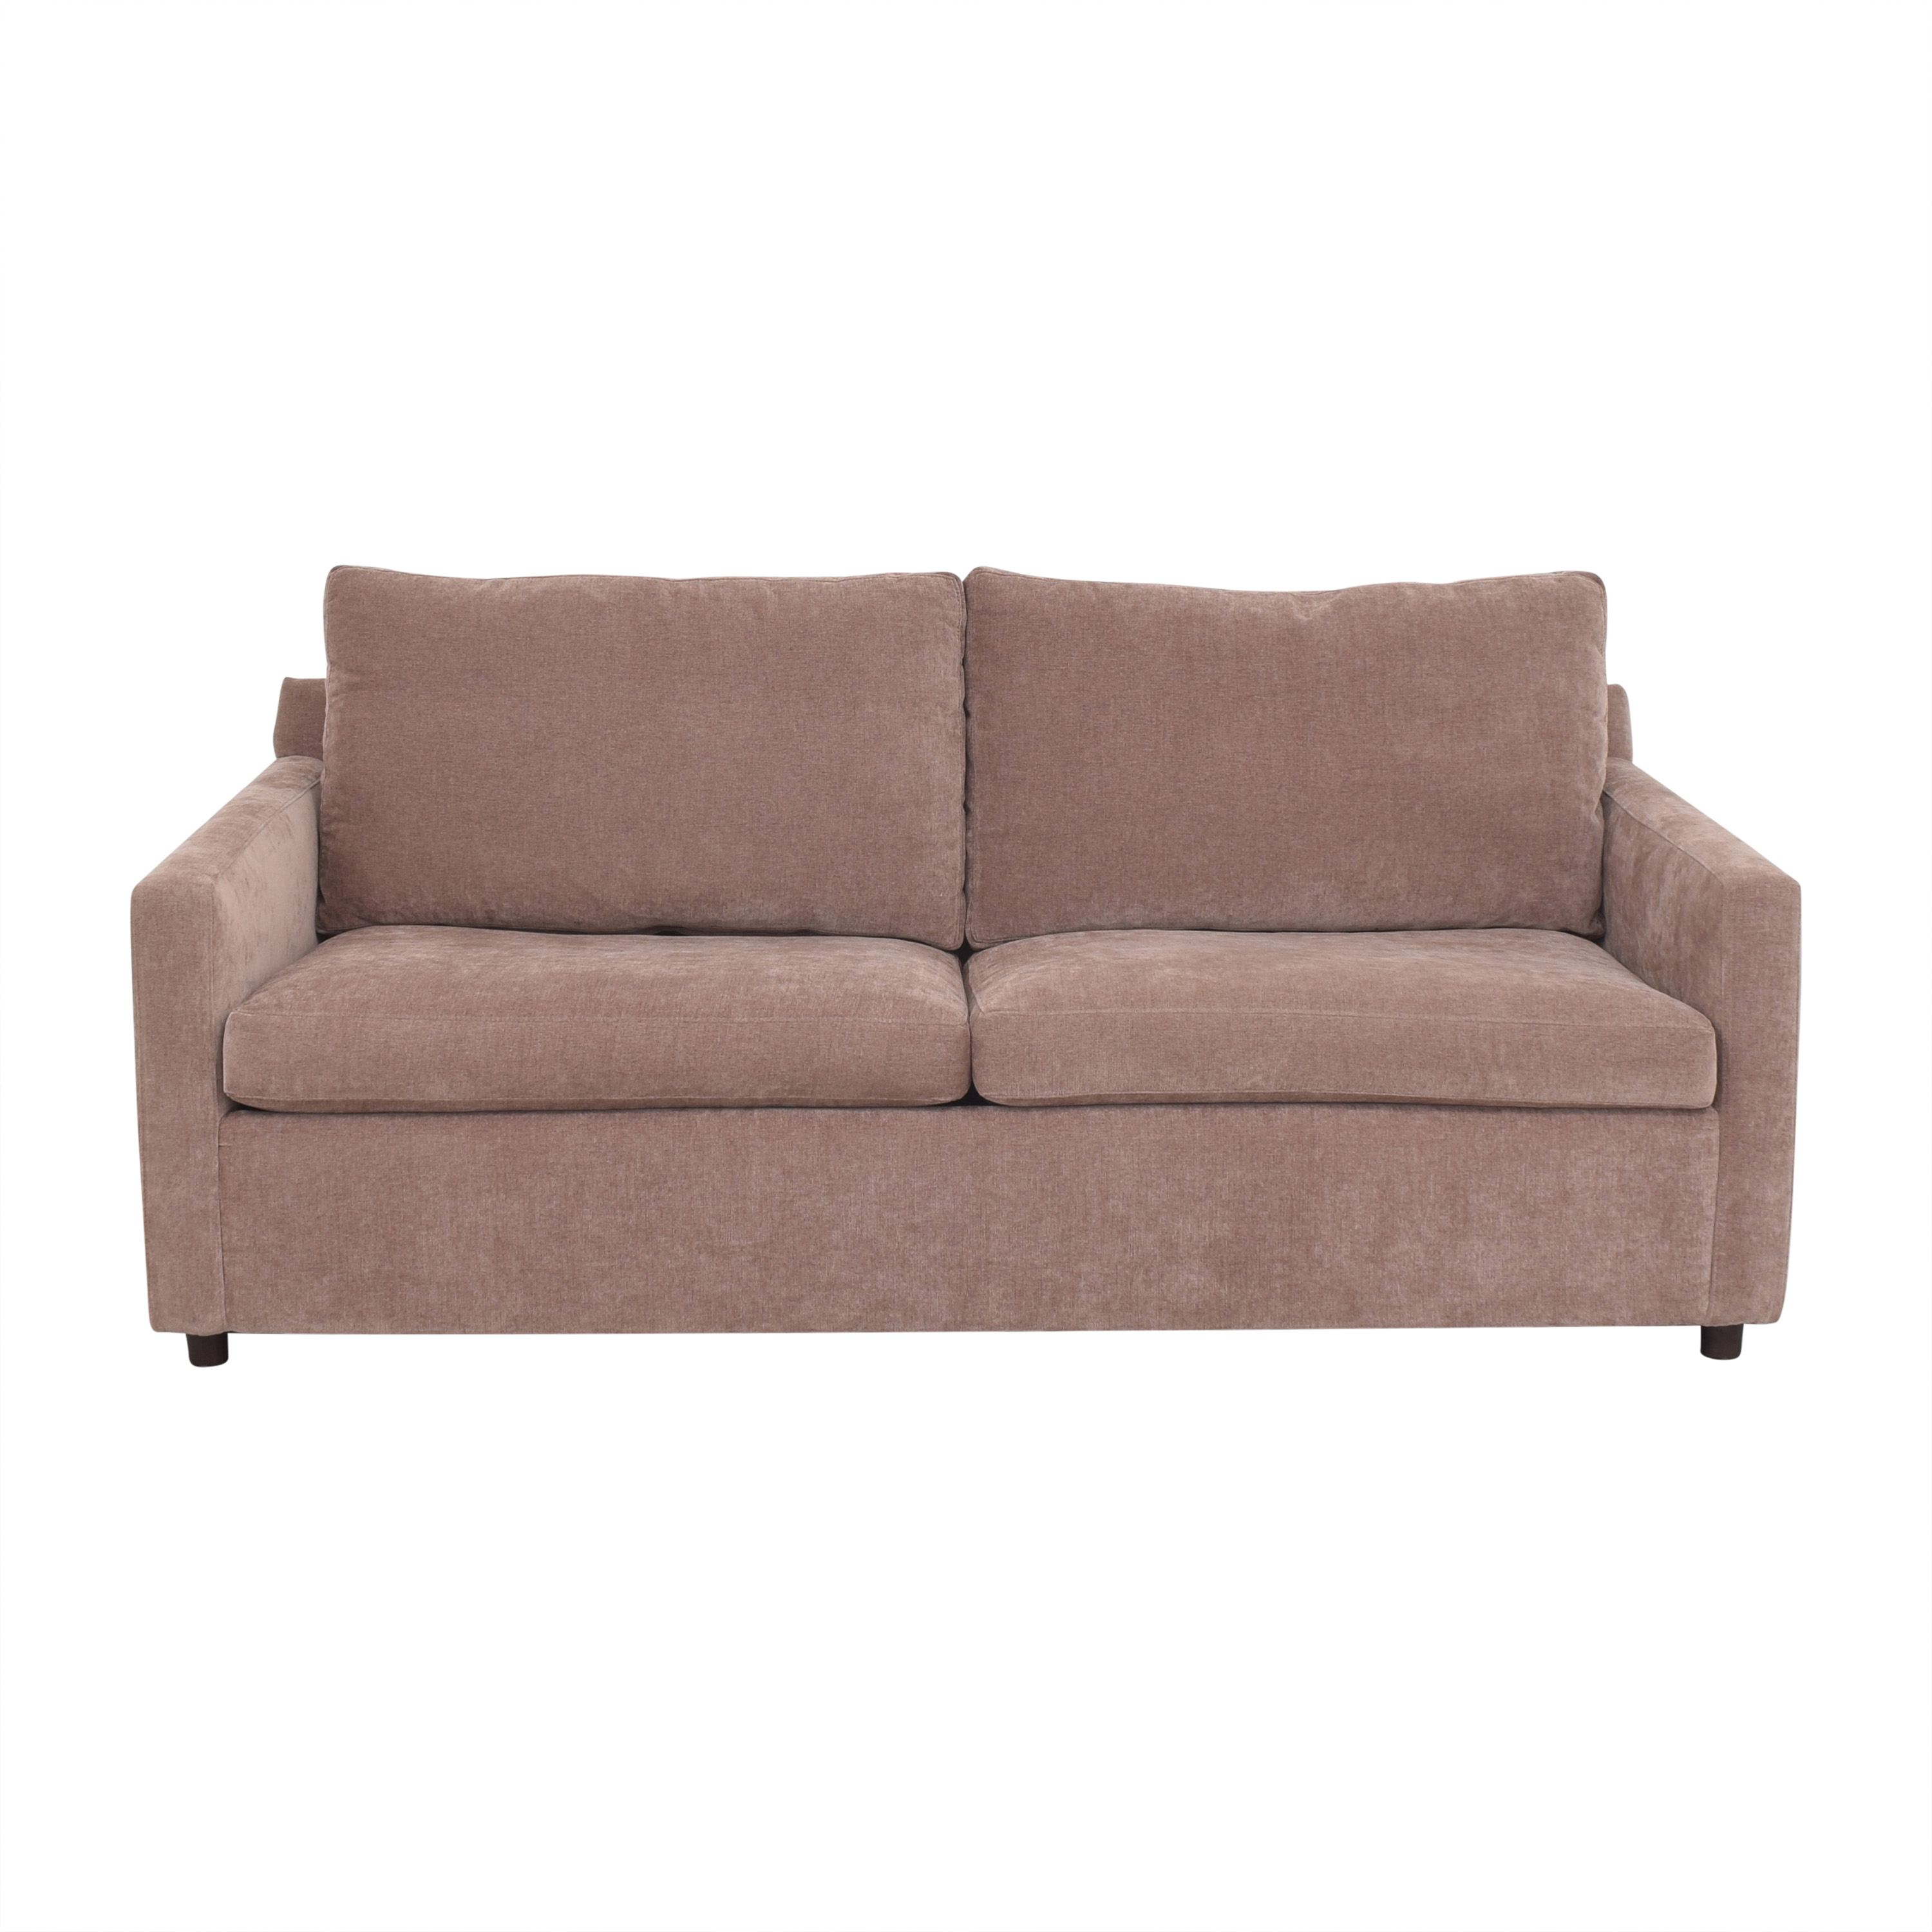 ABC Carpet & Home Lucali Full Sleeper Sofa / Sofa Beds